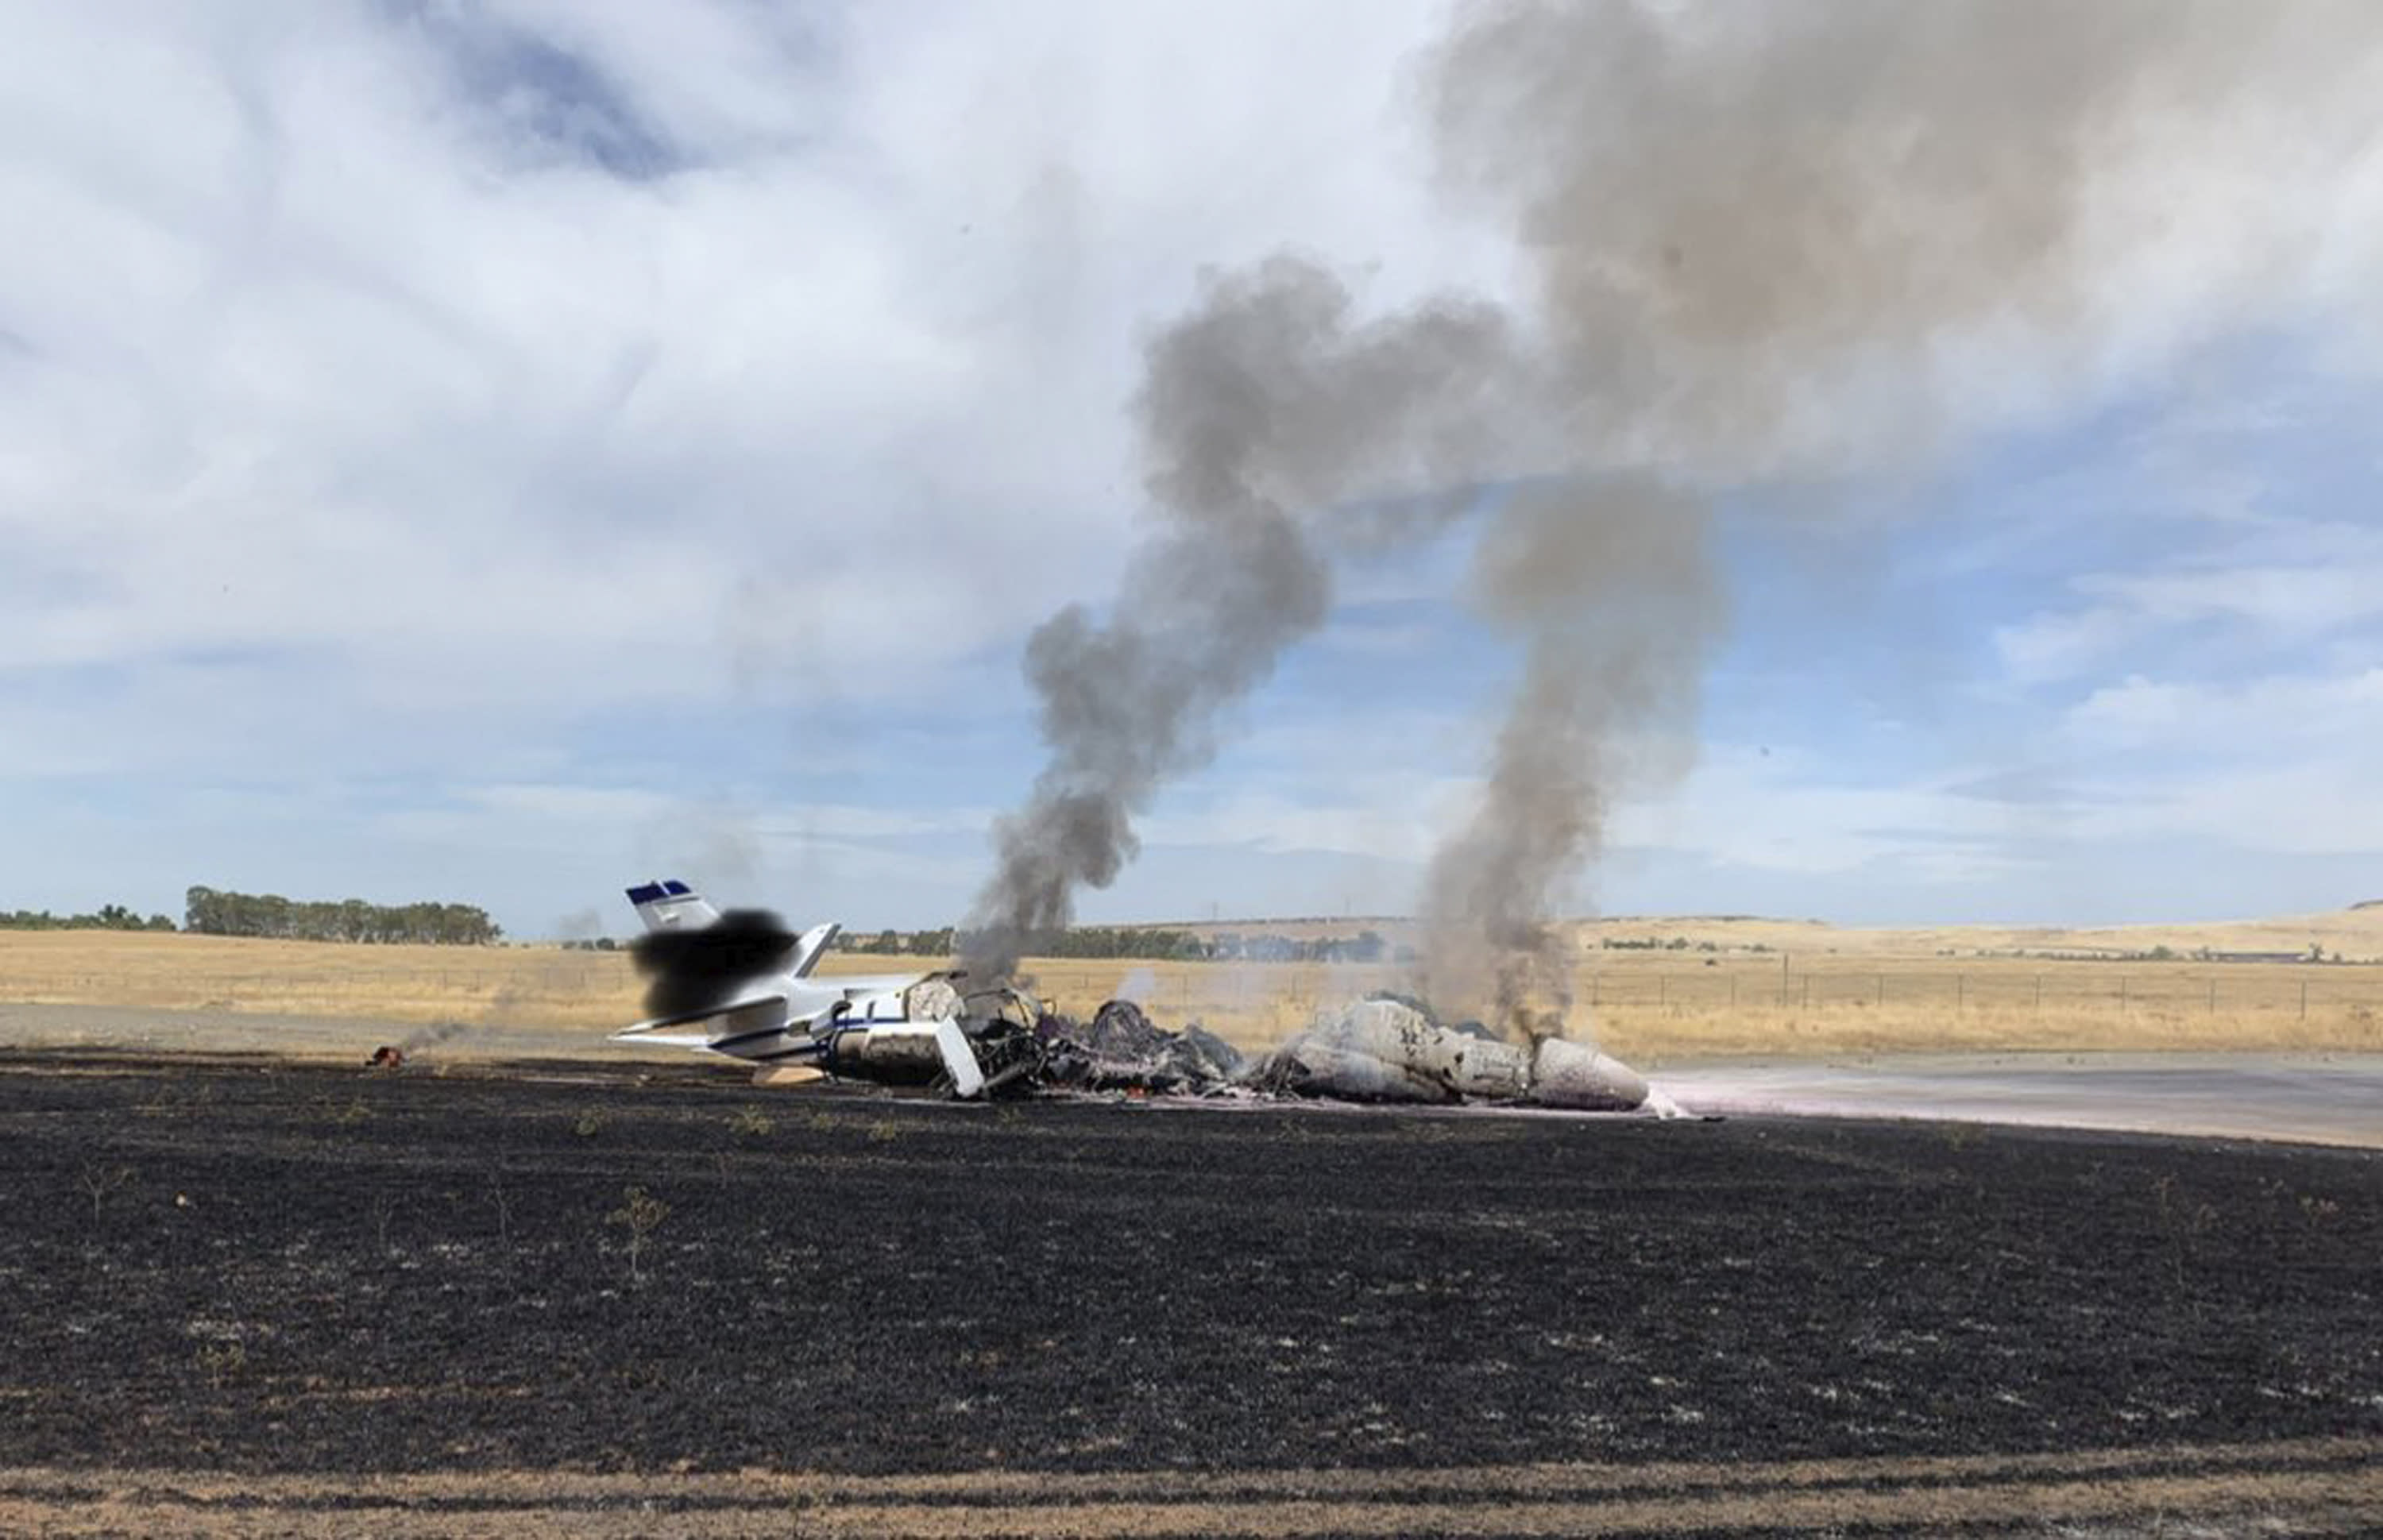 In this photo provided by the California Highway Patrol is the scene where a jet burst into flames after aborting a takeoff Wednesday, Aug. 21, 2019, in Oroville, Calif. Officials say a small jet burst into flames while trying to take off from a small Northern California airport, but all 10 people on board escaped injury. The Federal Aviation Administration says the pilot of the twin-engine Cessna Citation jet aborted its takeoff at Oroville Municipal Airport for unknown reasons shortly before noon Wednesday. The aircraft slid off the end of the runway into the grass and caught fire. The plane was flying from Oroville to Portland International Airport in Oregon. (California Highway Patrol via AP)